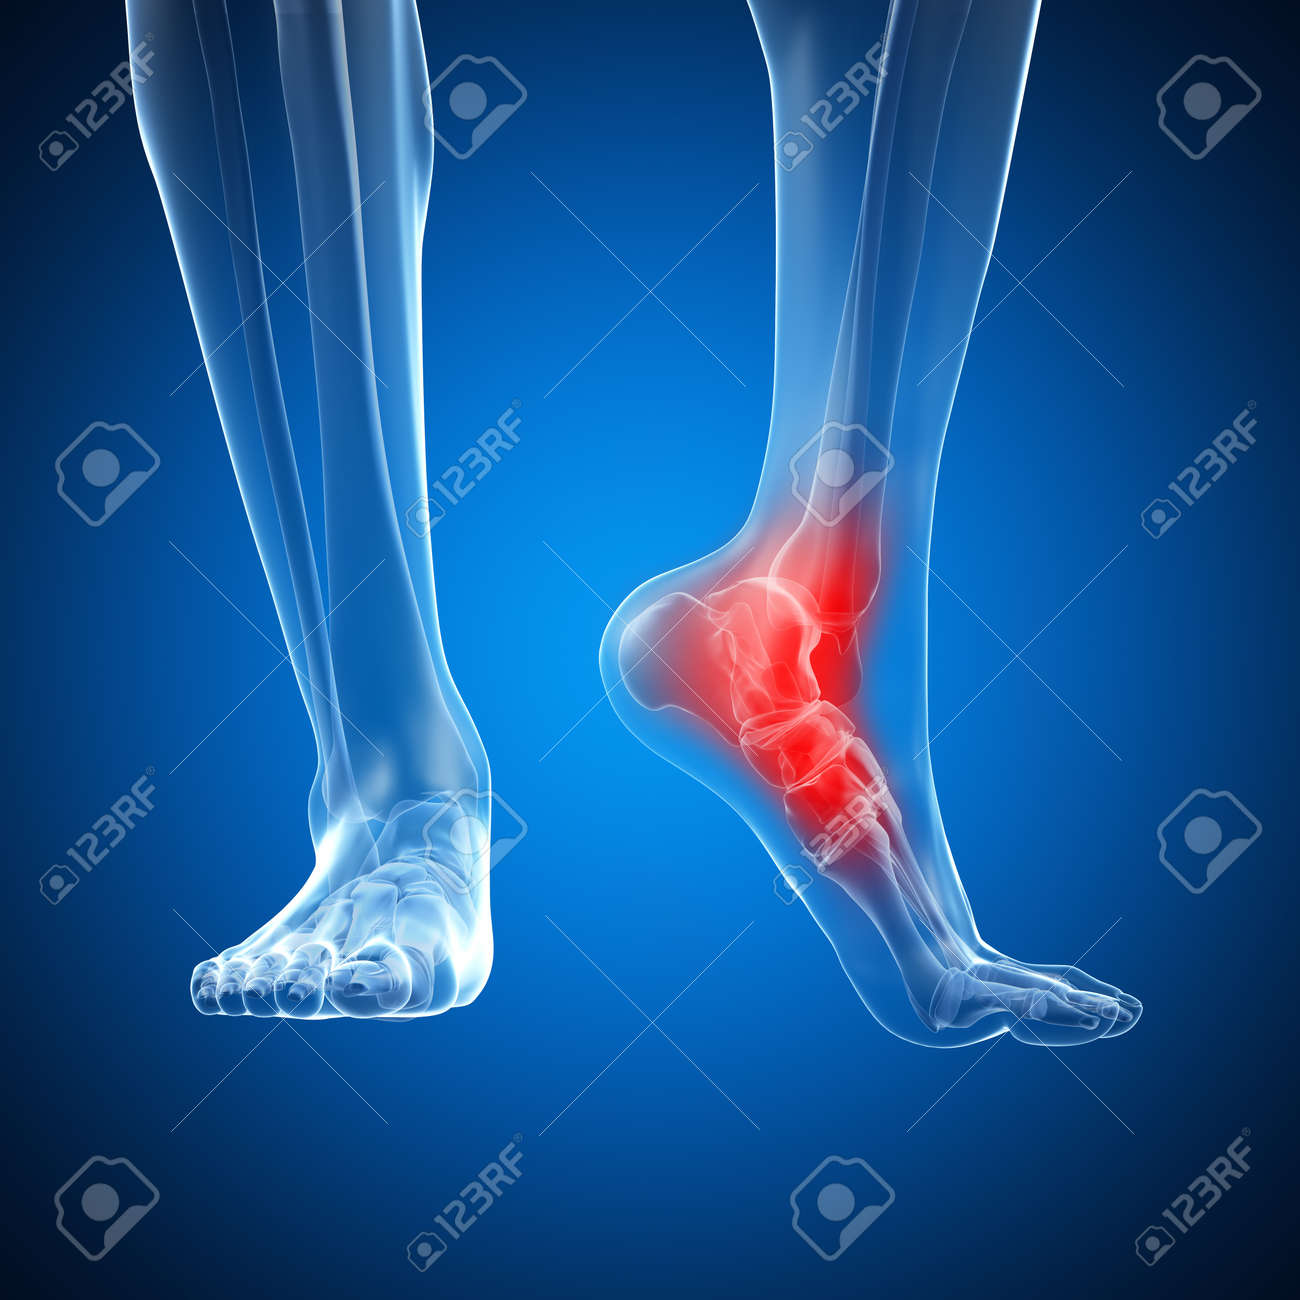 3d Rendered Illustration Of A Painful Ankle Stock Photo, Picture And ...